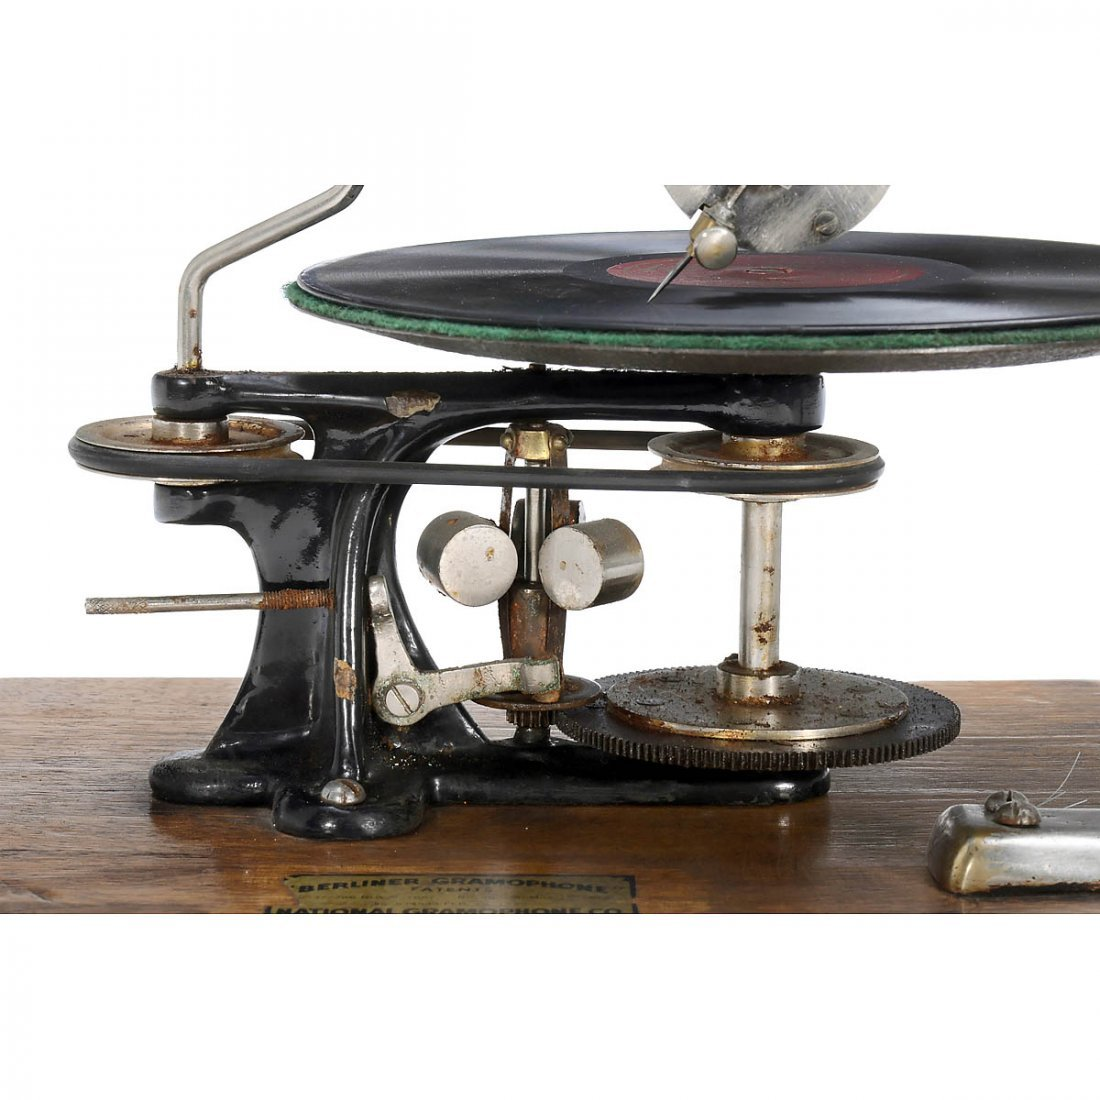 Emile Berliner-Style Hand-Cranked Gramophone - 3